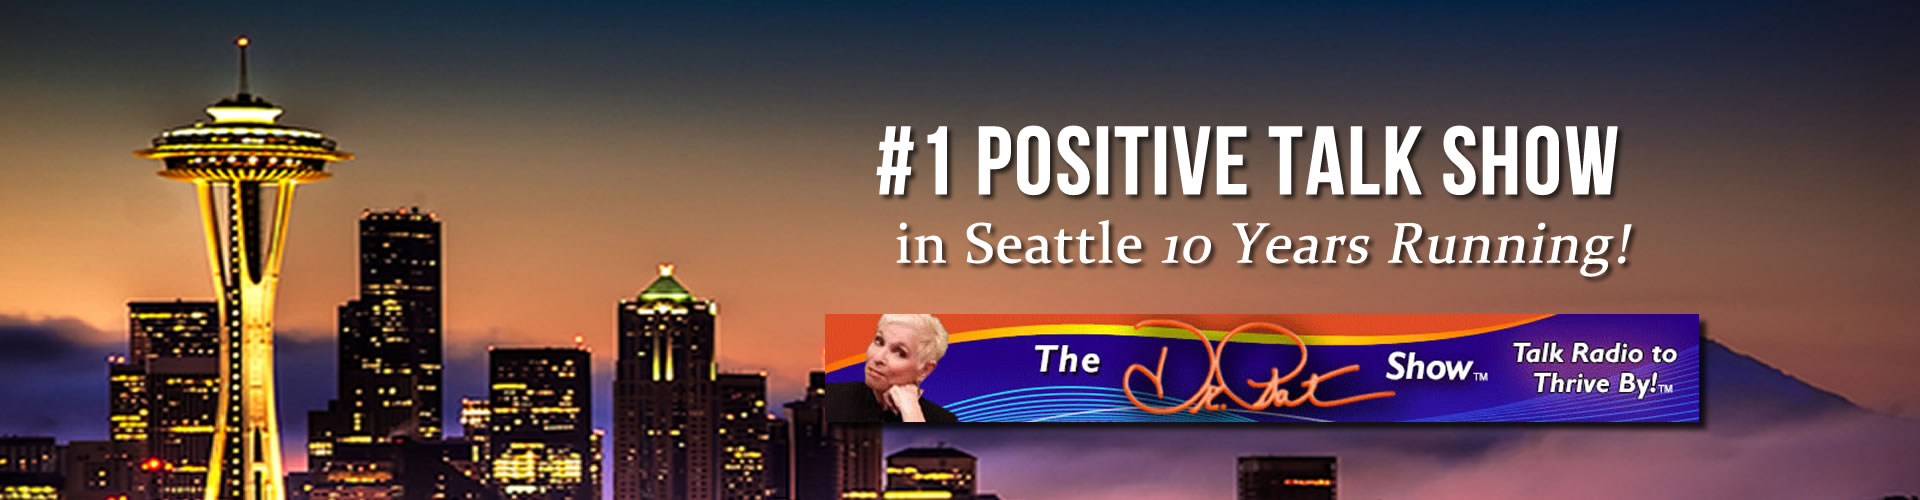 The Dr. Pat Show Number One Positive Talk Seattle